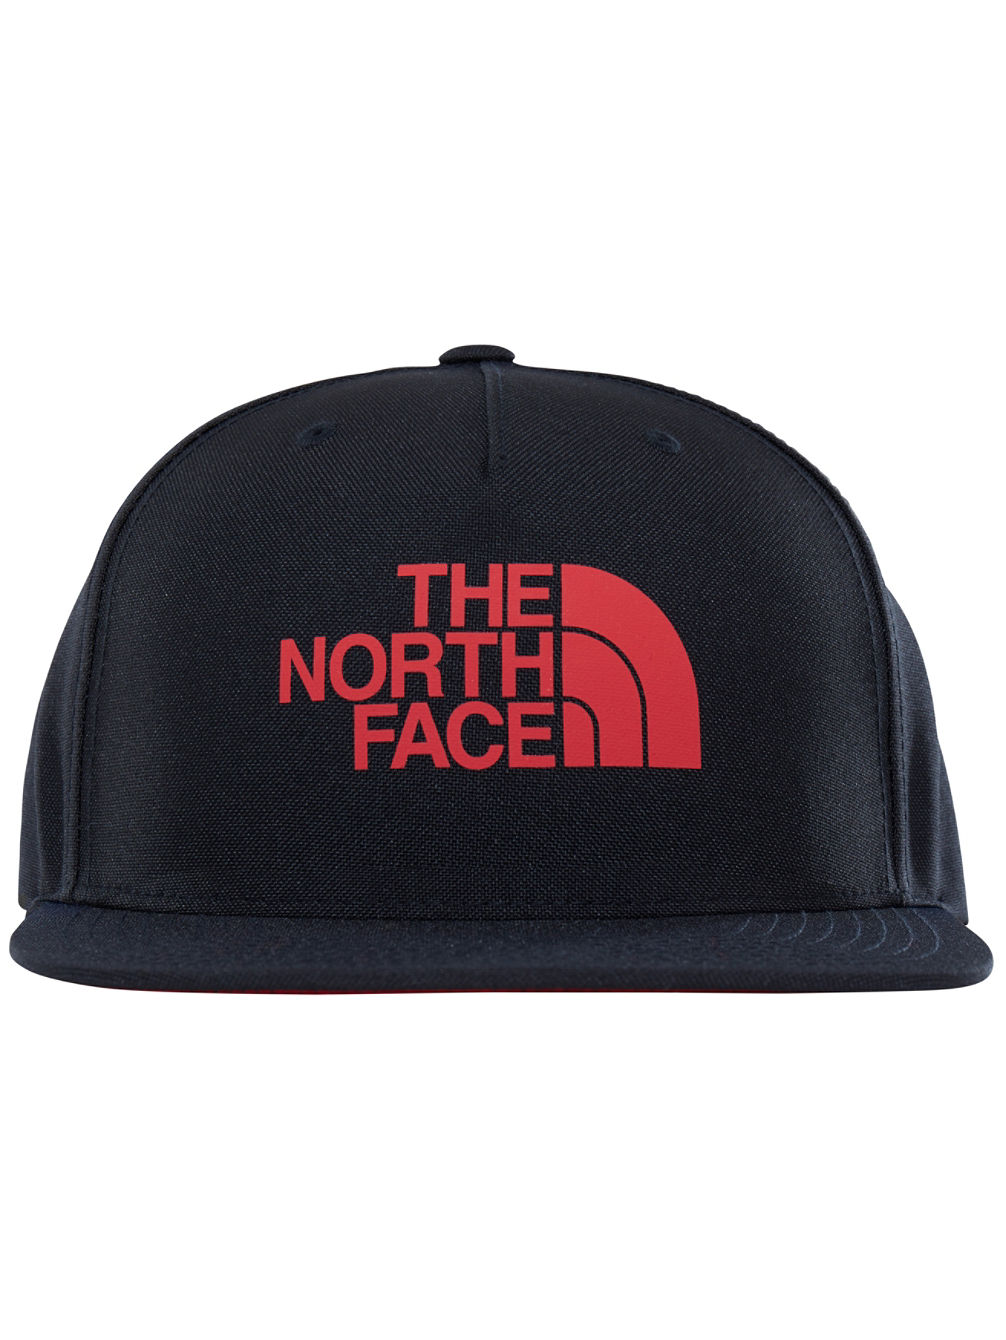 90S Rage Ball Cap